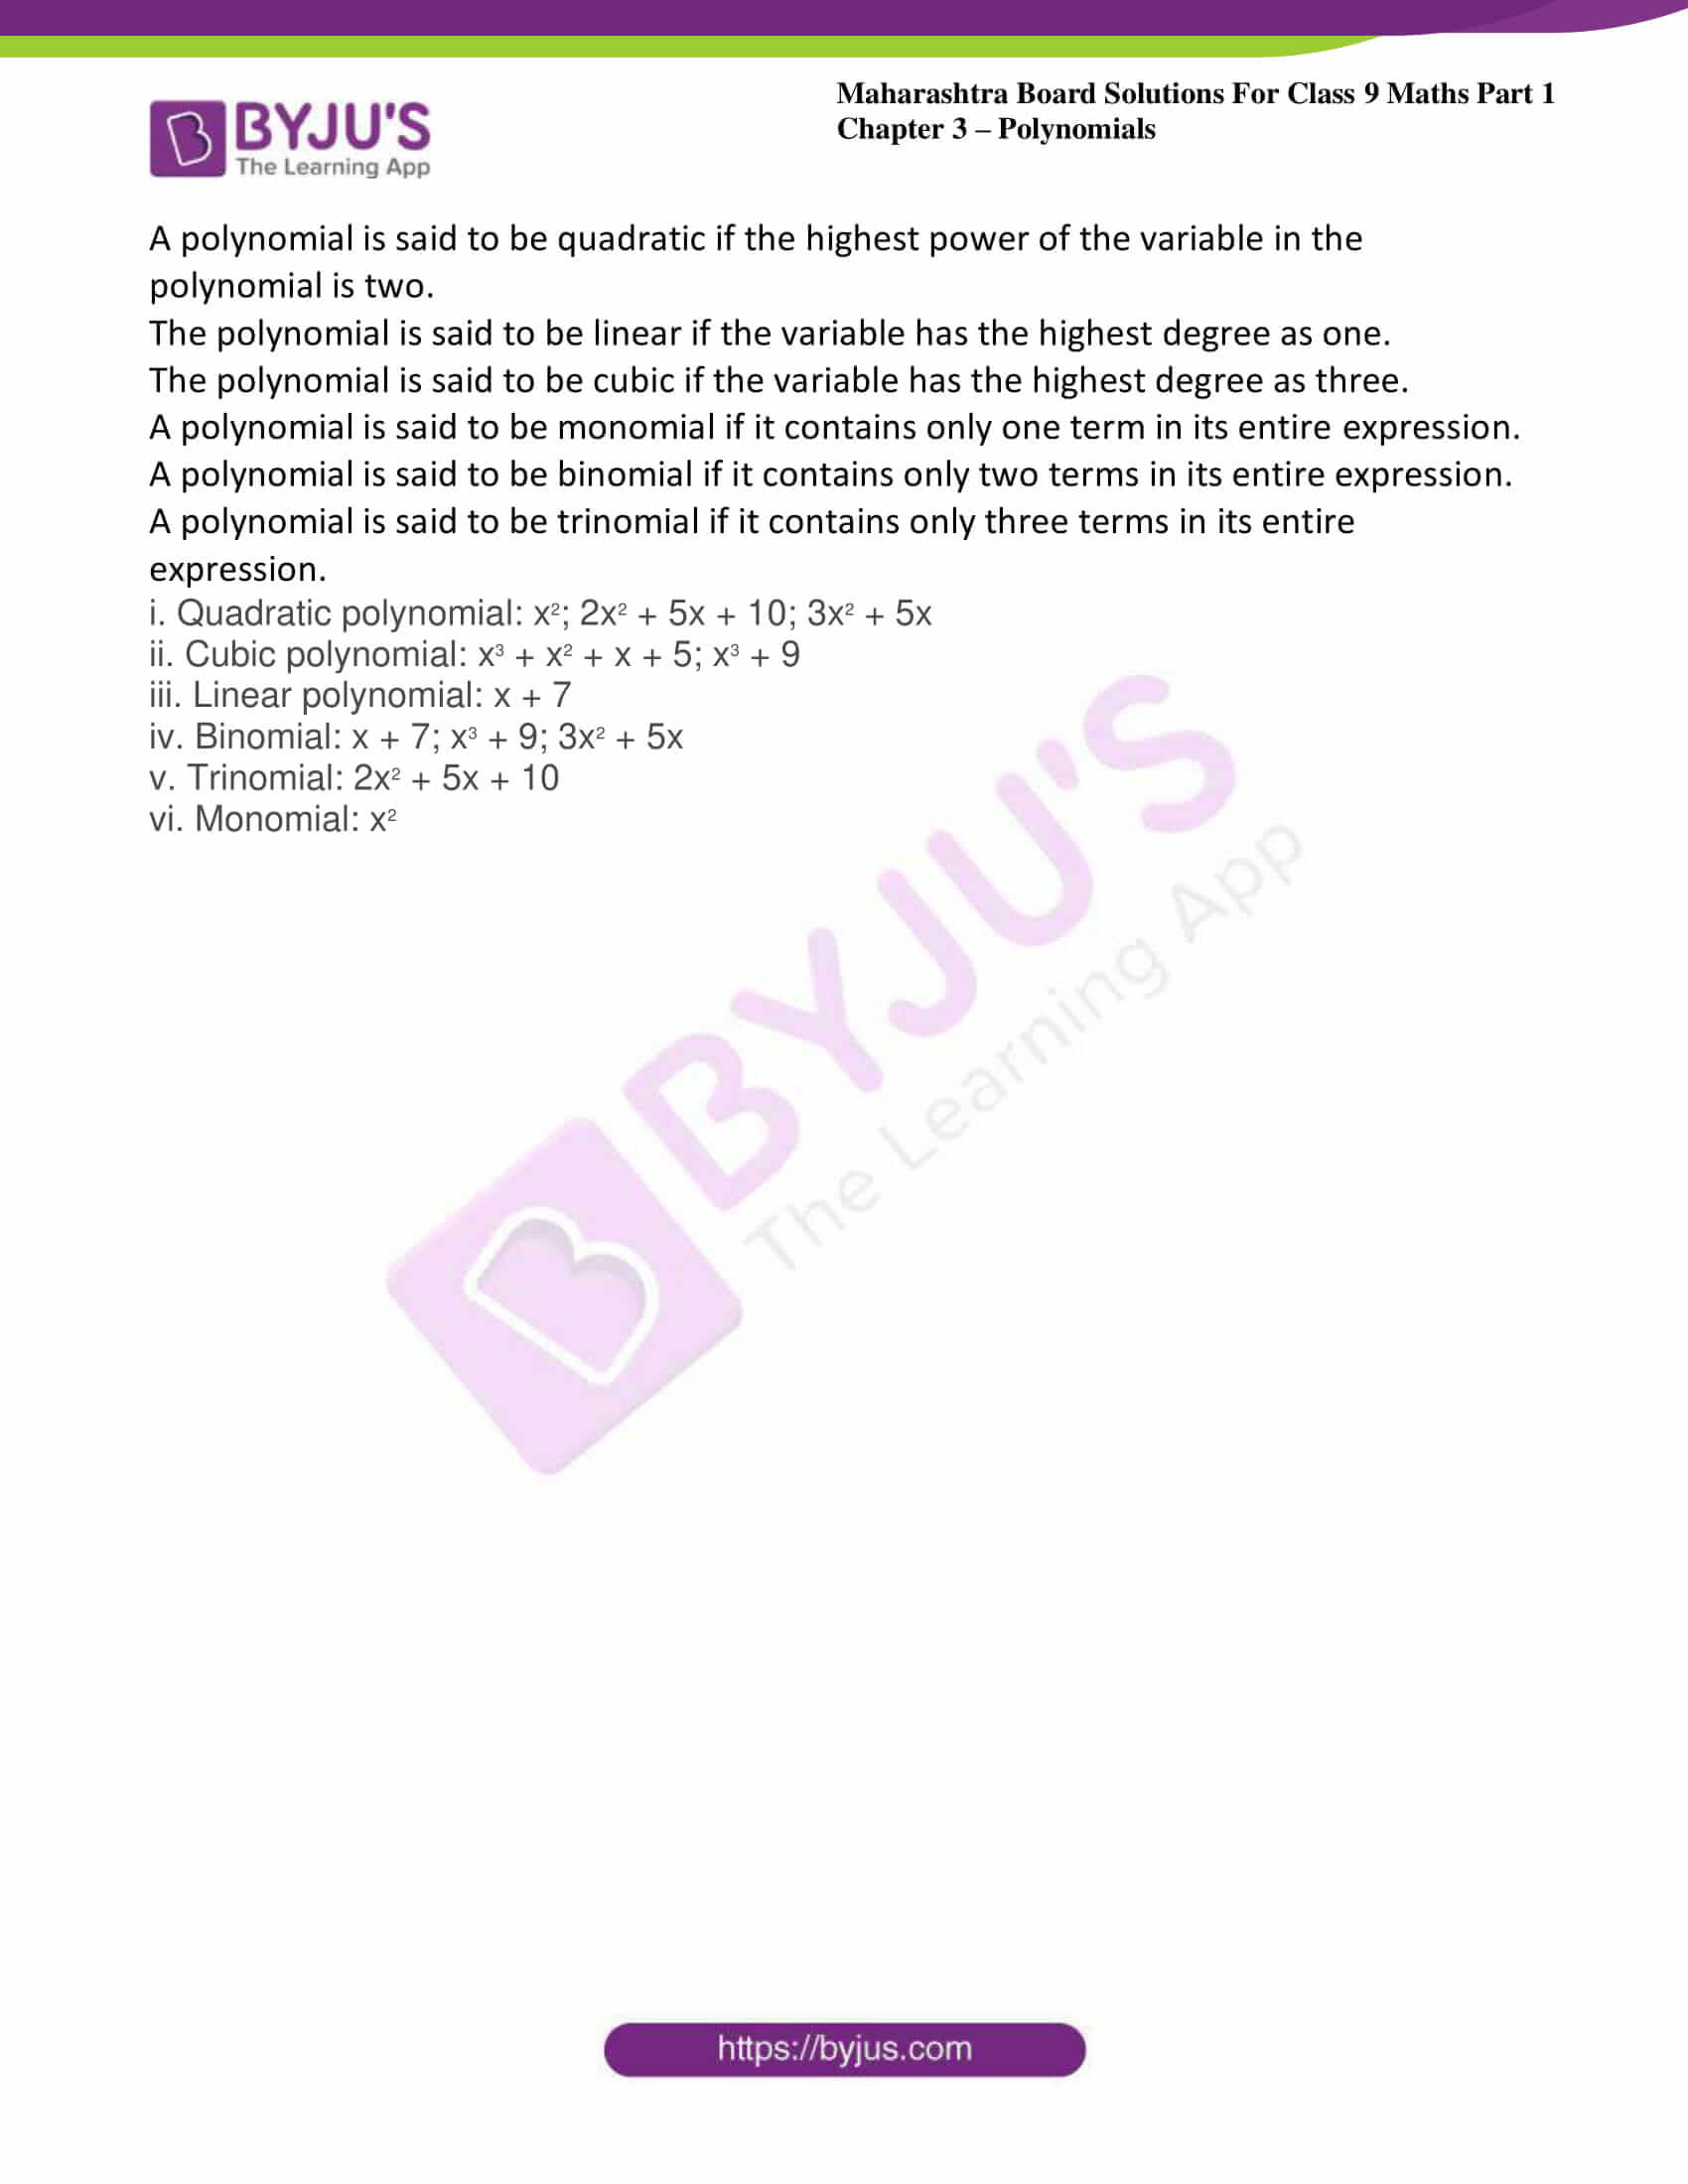 msbshse sol class 9 maths part 1 chapter 3 polynomials 07